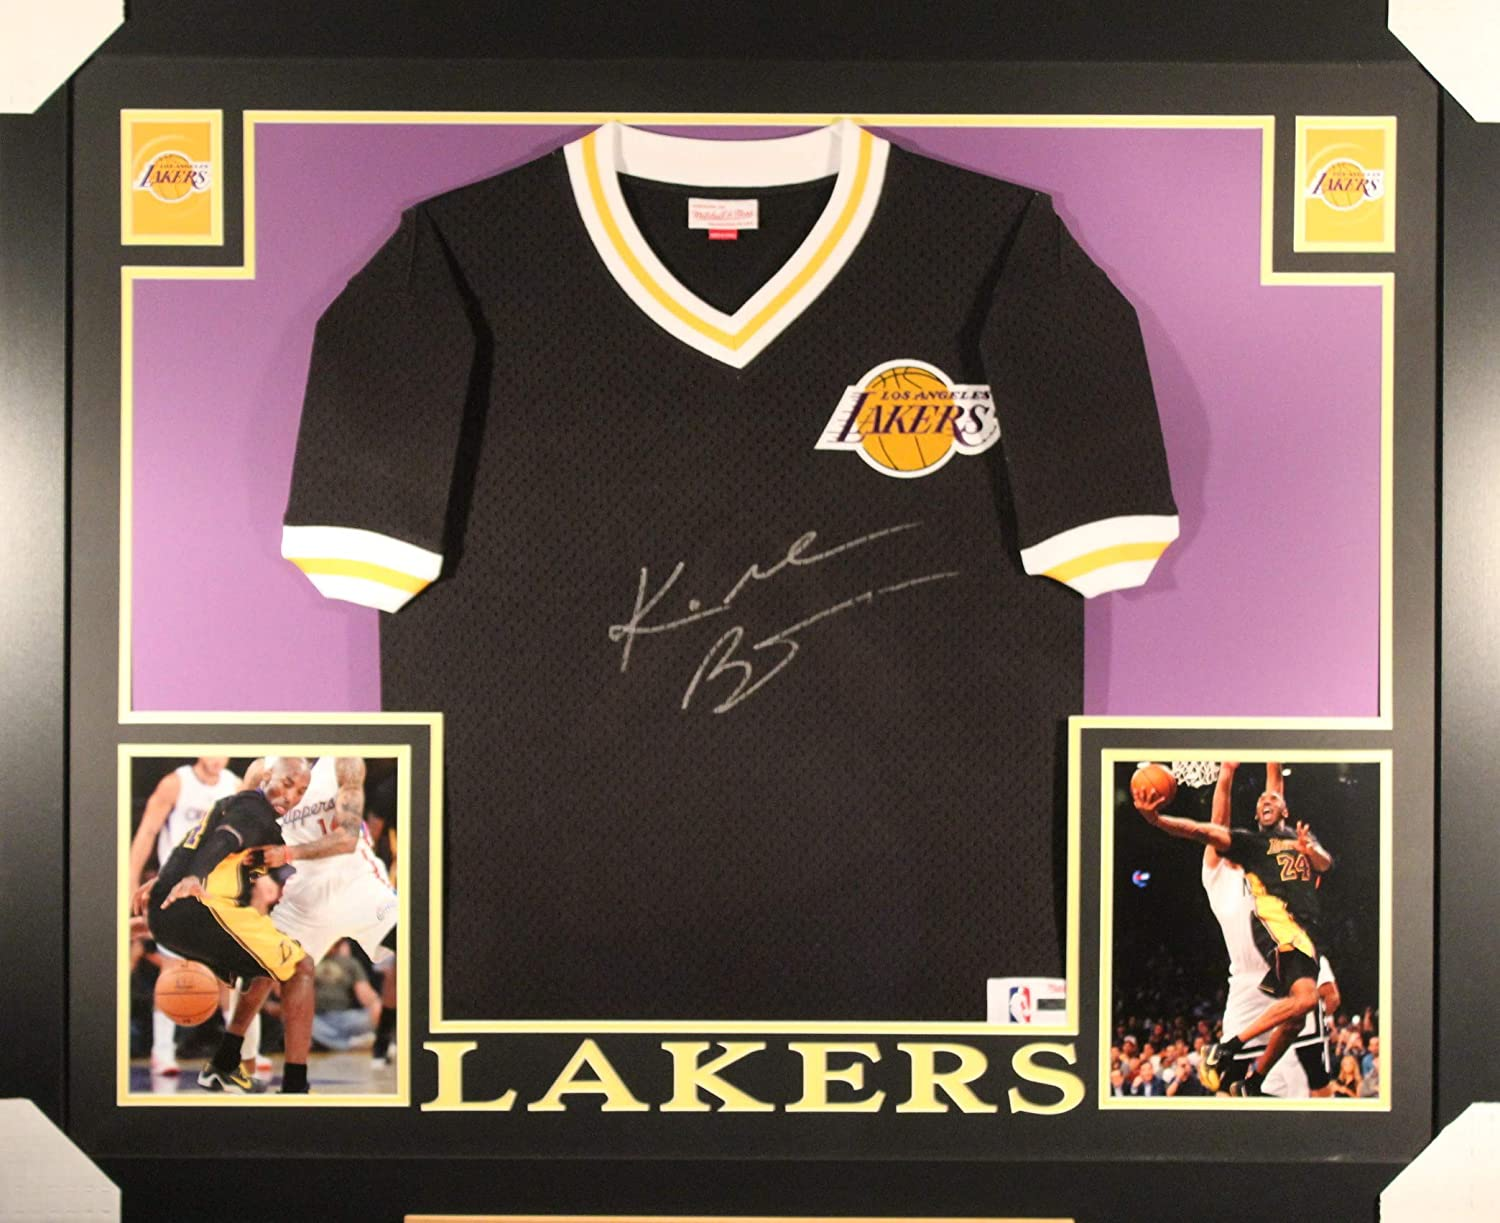 sports shoes 405a6 6debd Kobe Bryant Los Angeles Lakers Signed Autograph Custom ...